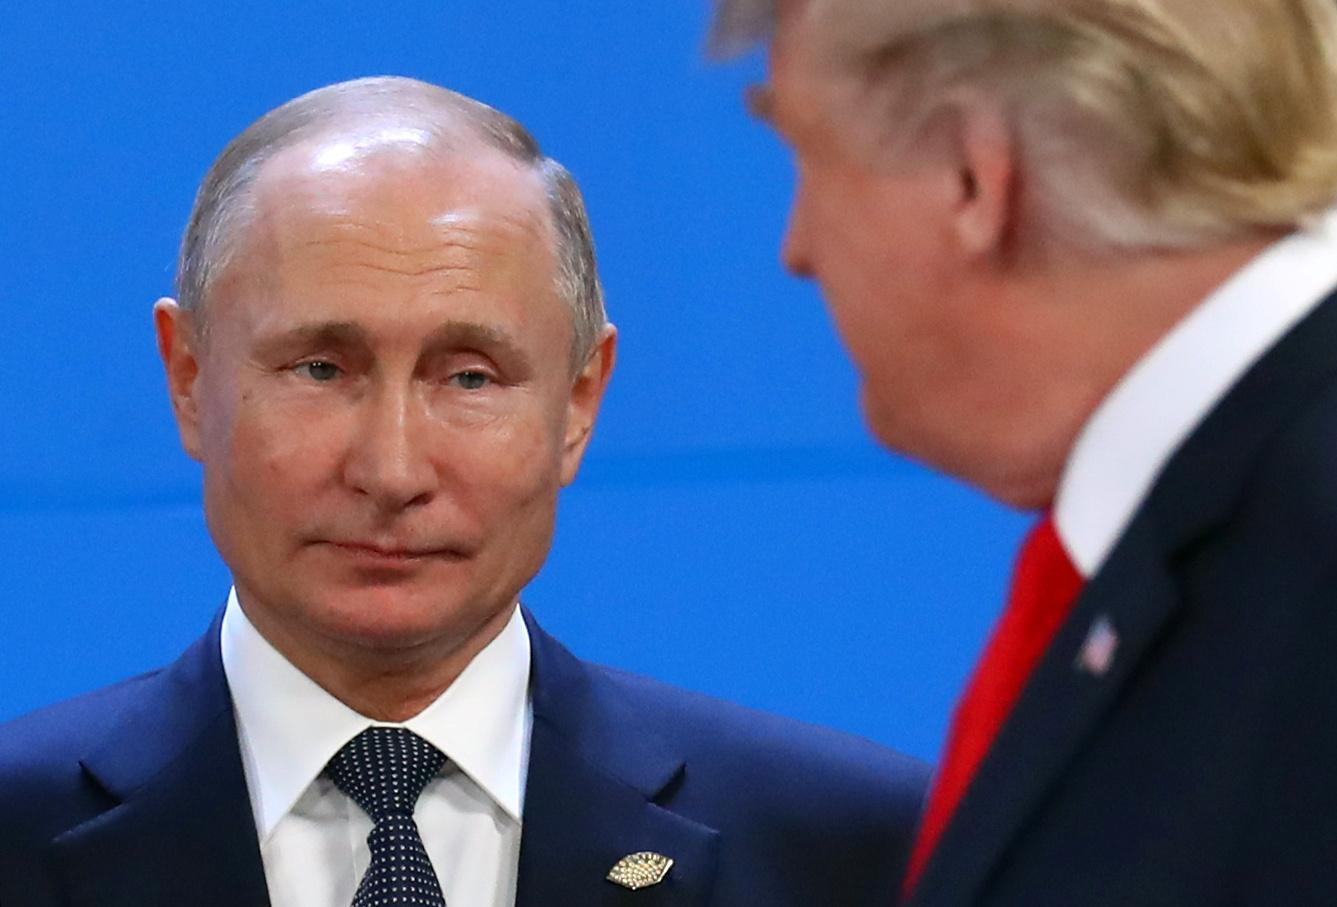 Russia Has Low Expectations Ahead of Trump-Putin G20 Meeting